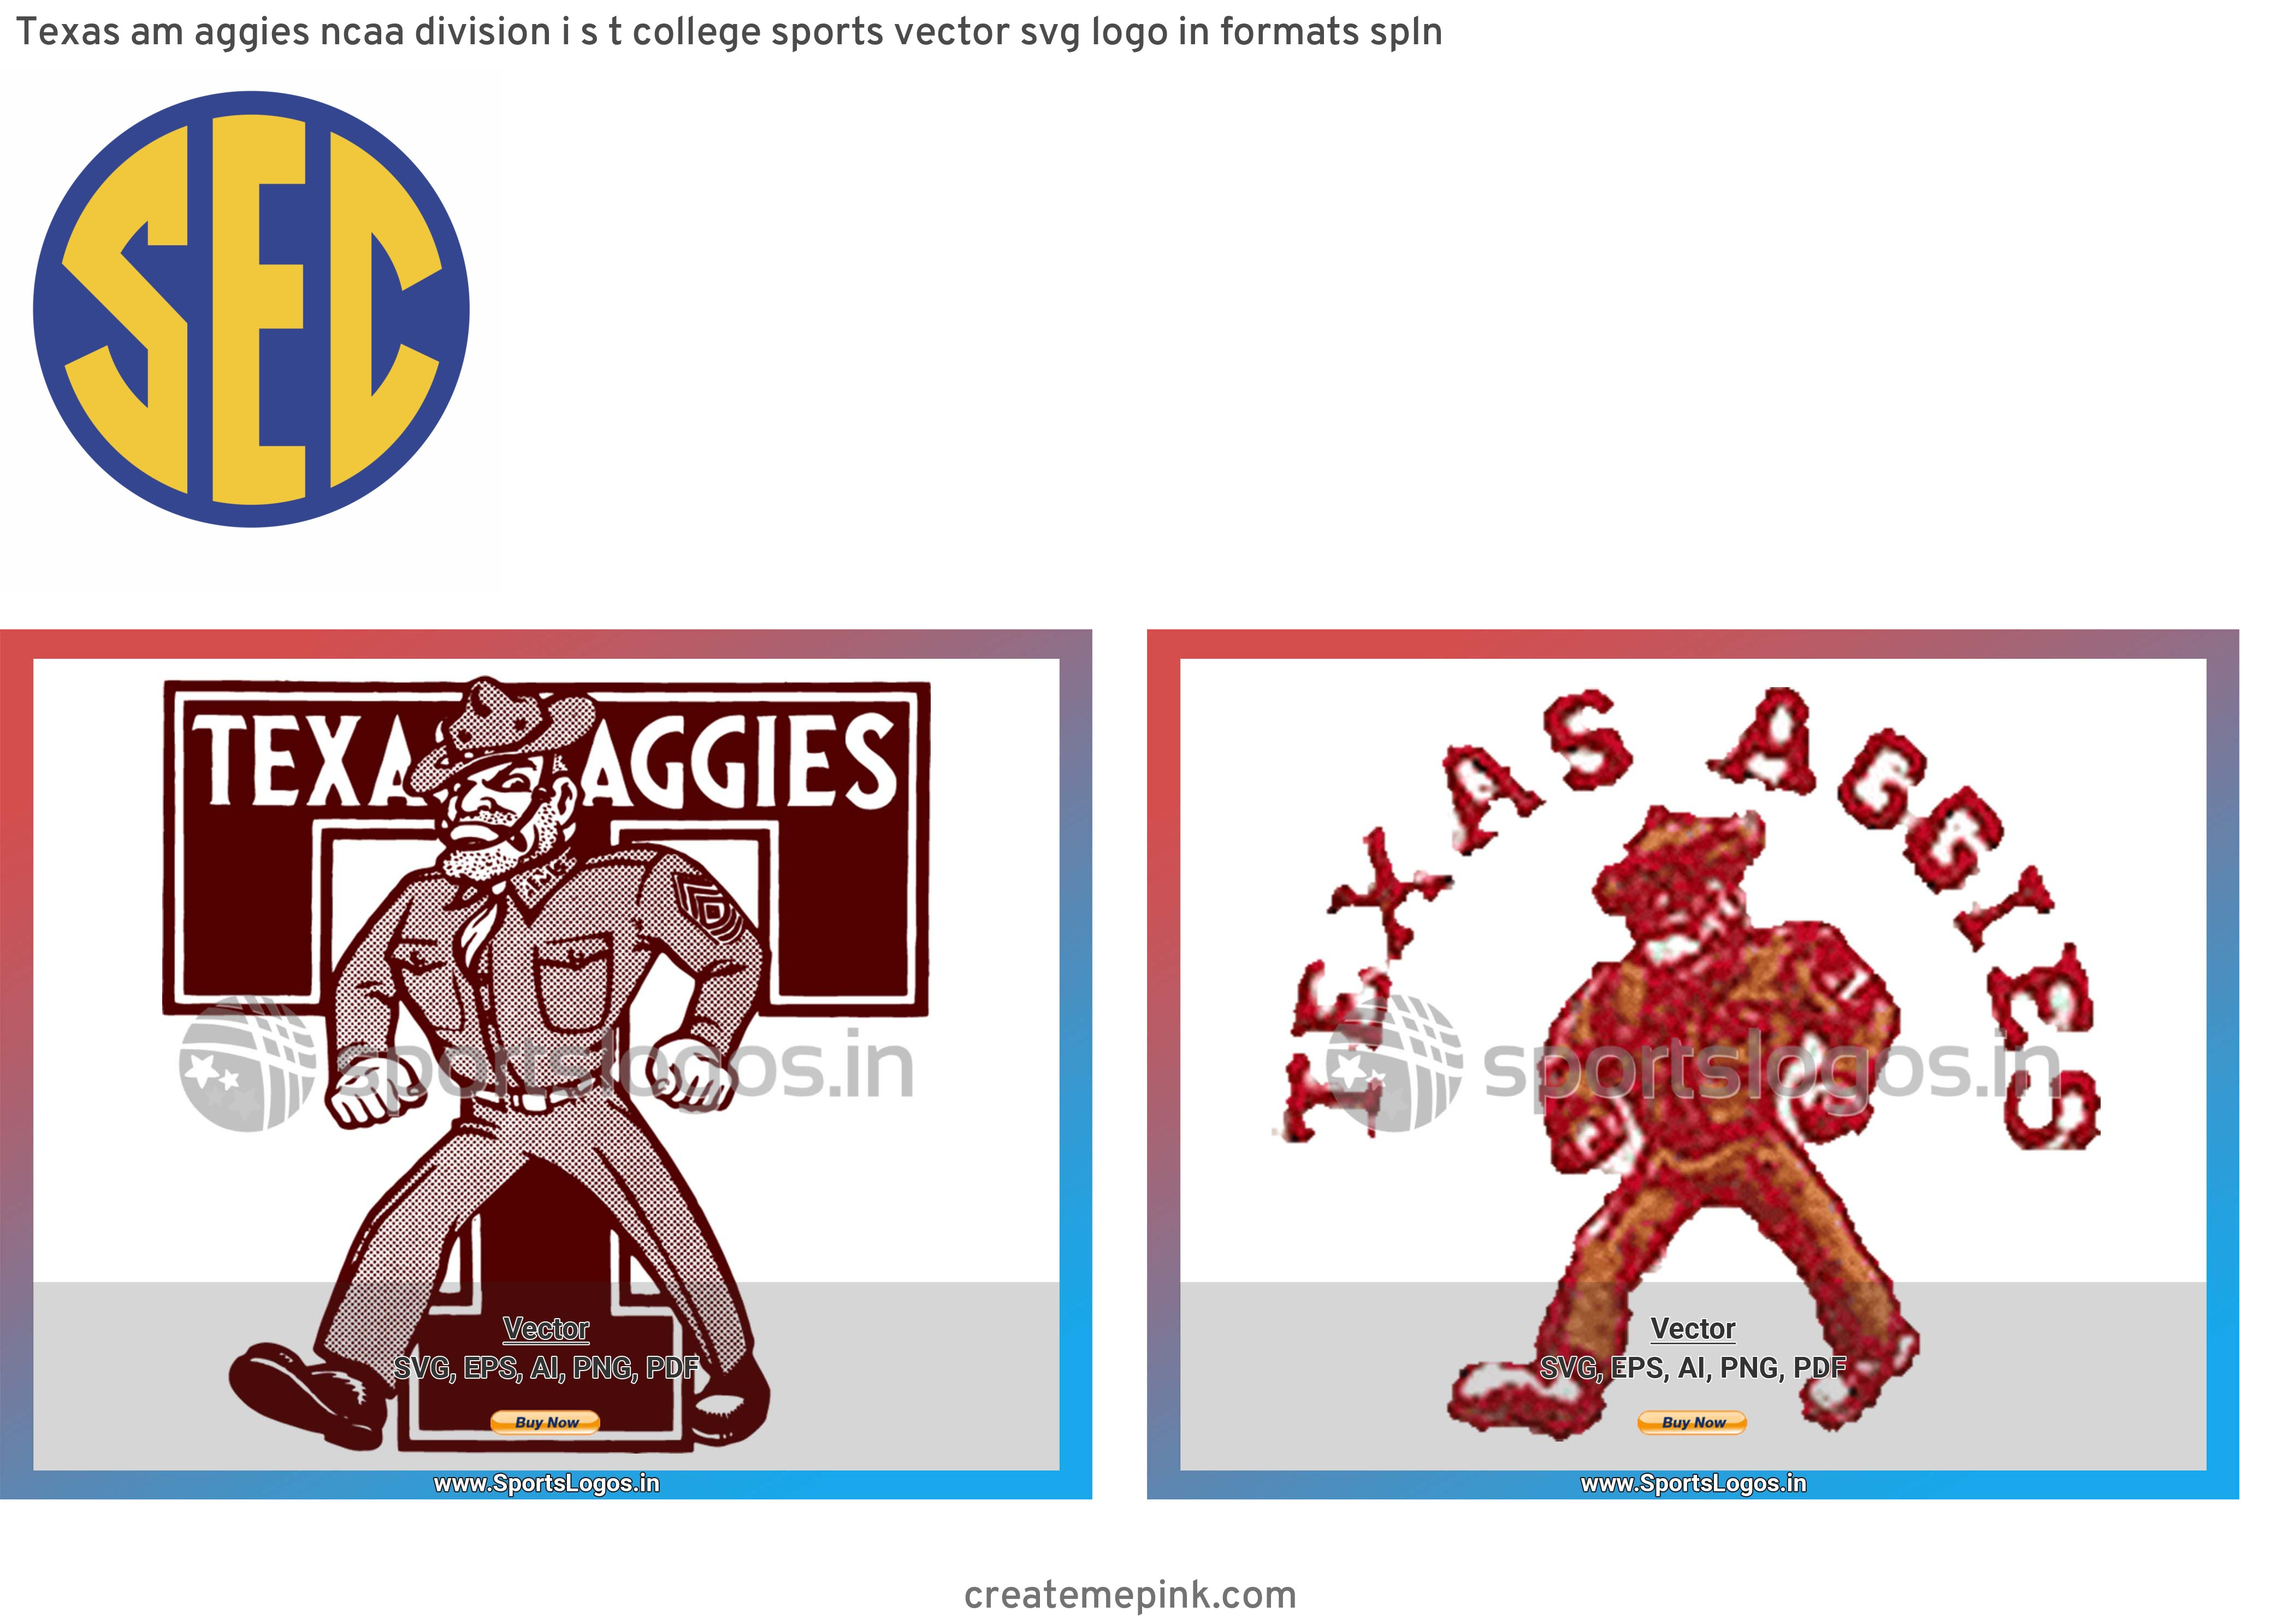 ATM Aggies Vector: Texas Am Aggies Ncaa Division I S T College Sports Vector Svg Logo In Formats Spln